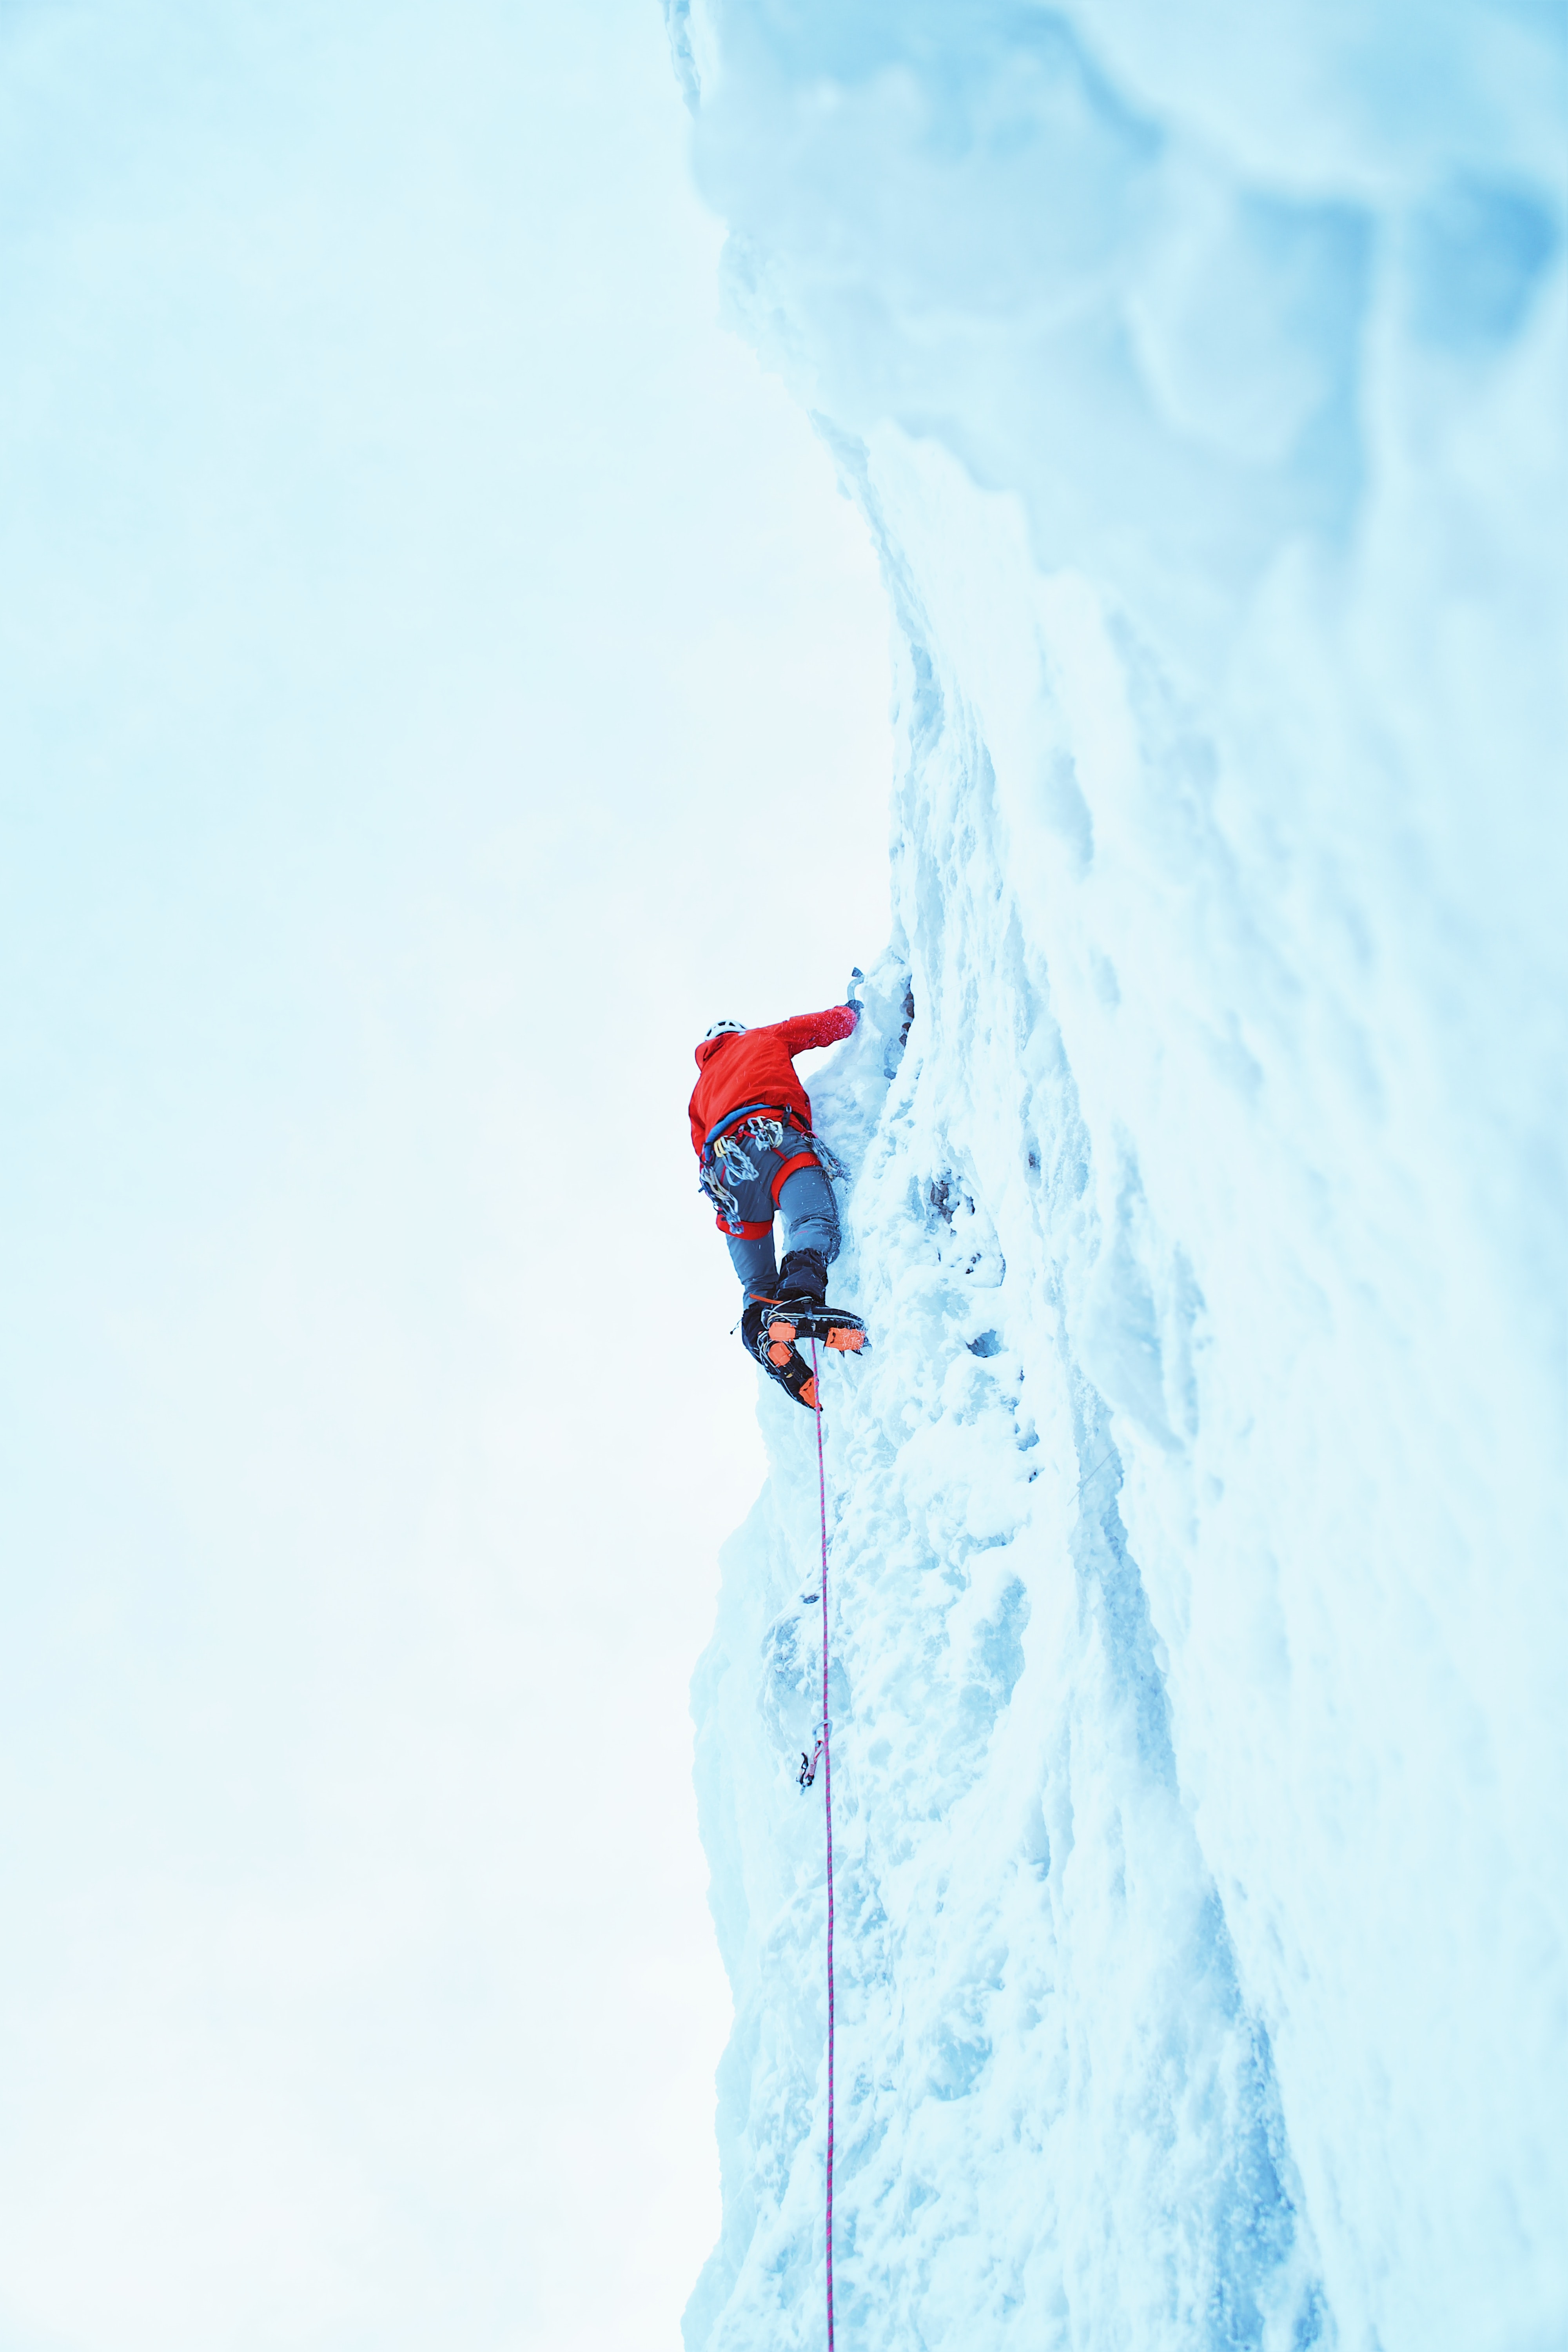 A person wearing a red shirt ice climbing, attached to a rope, at Bridal Veil Falls